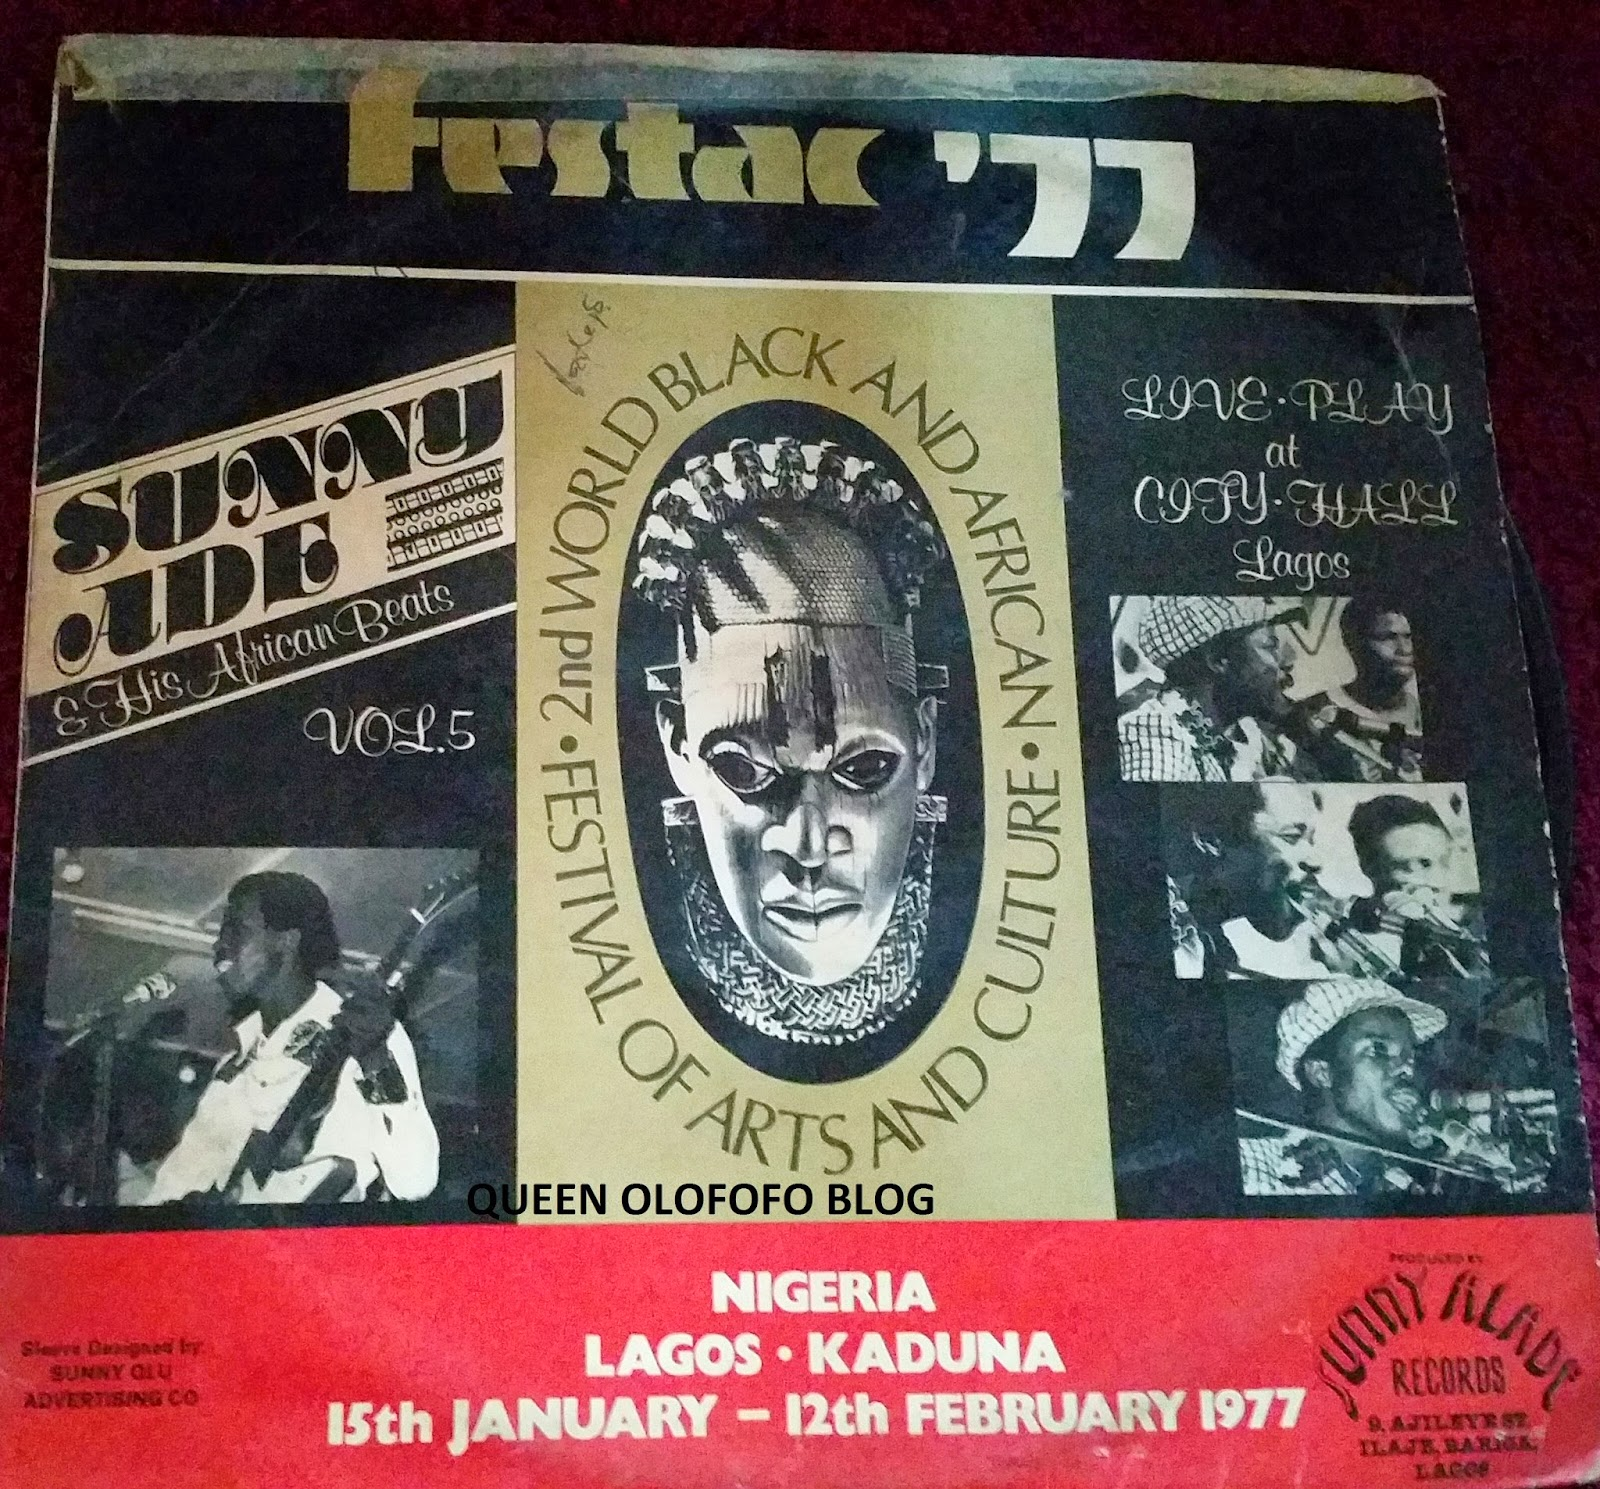 sunny ade with his festac 77 classic